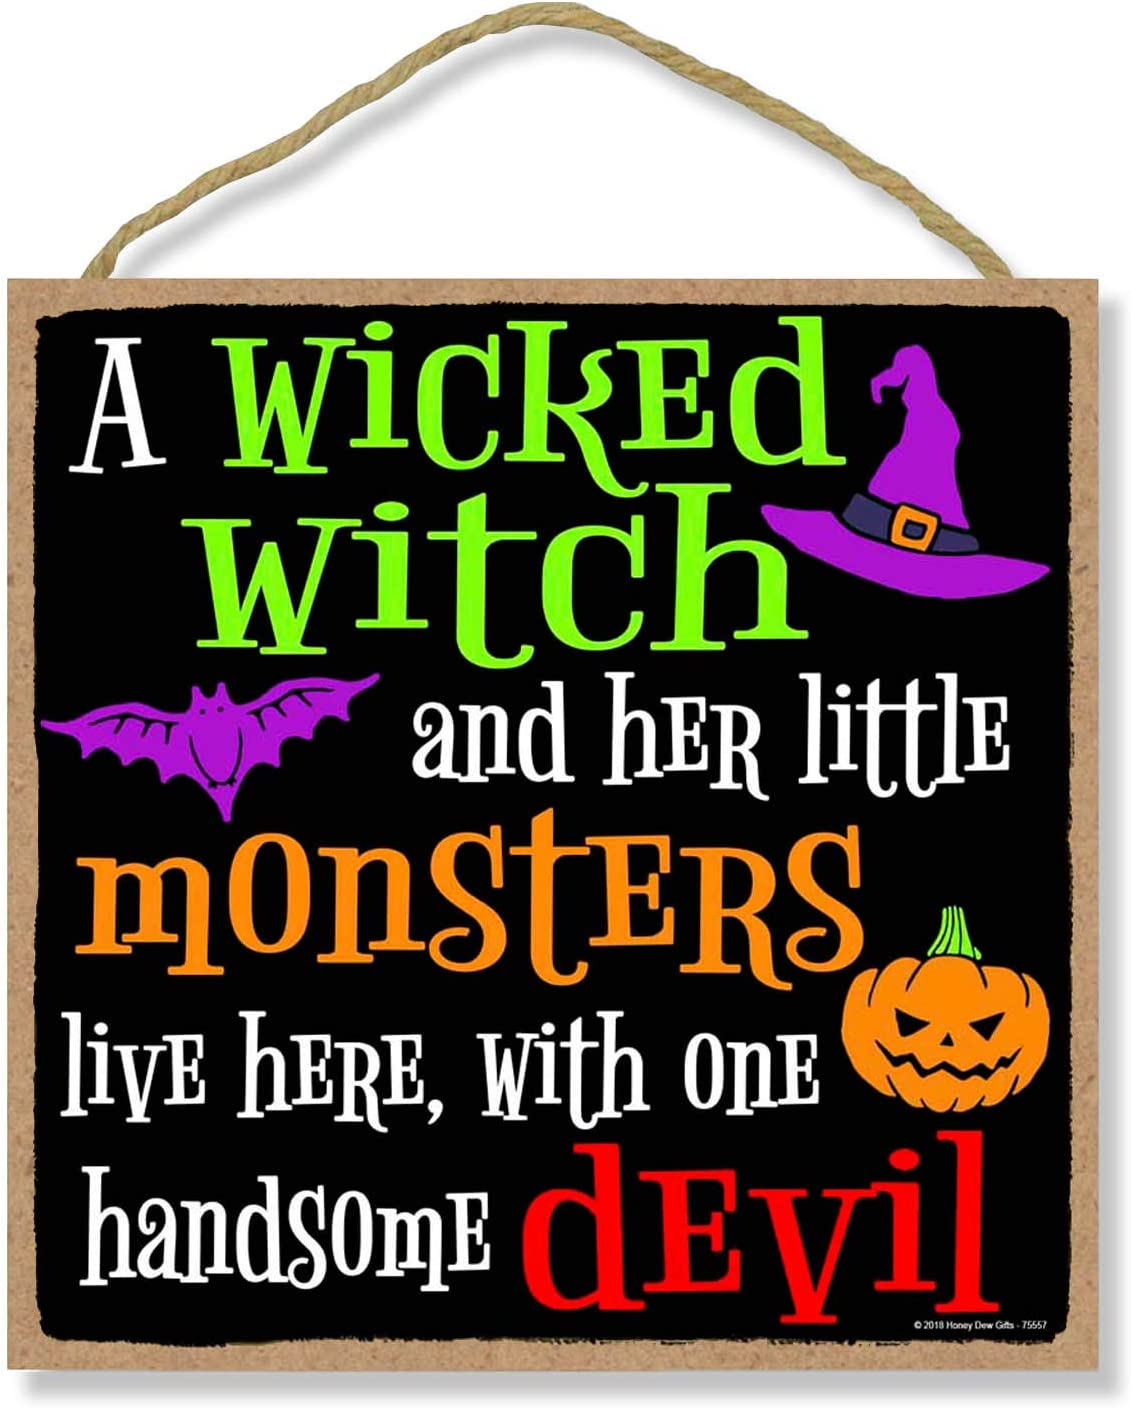 Honey Dew Gifts A Wicked Witch Monsters and Devil- 10 x 10 inch Hanging Halloween Signs, Wall Art, Decorative Wood Sign, Halloween Decor